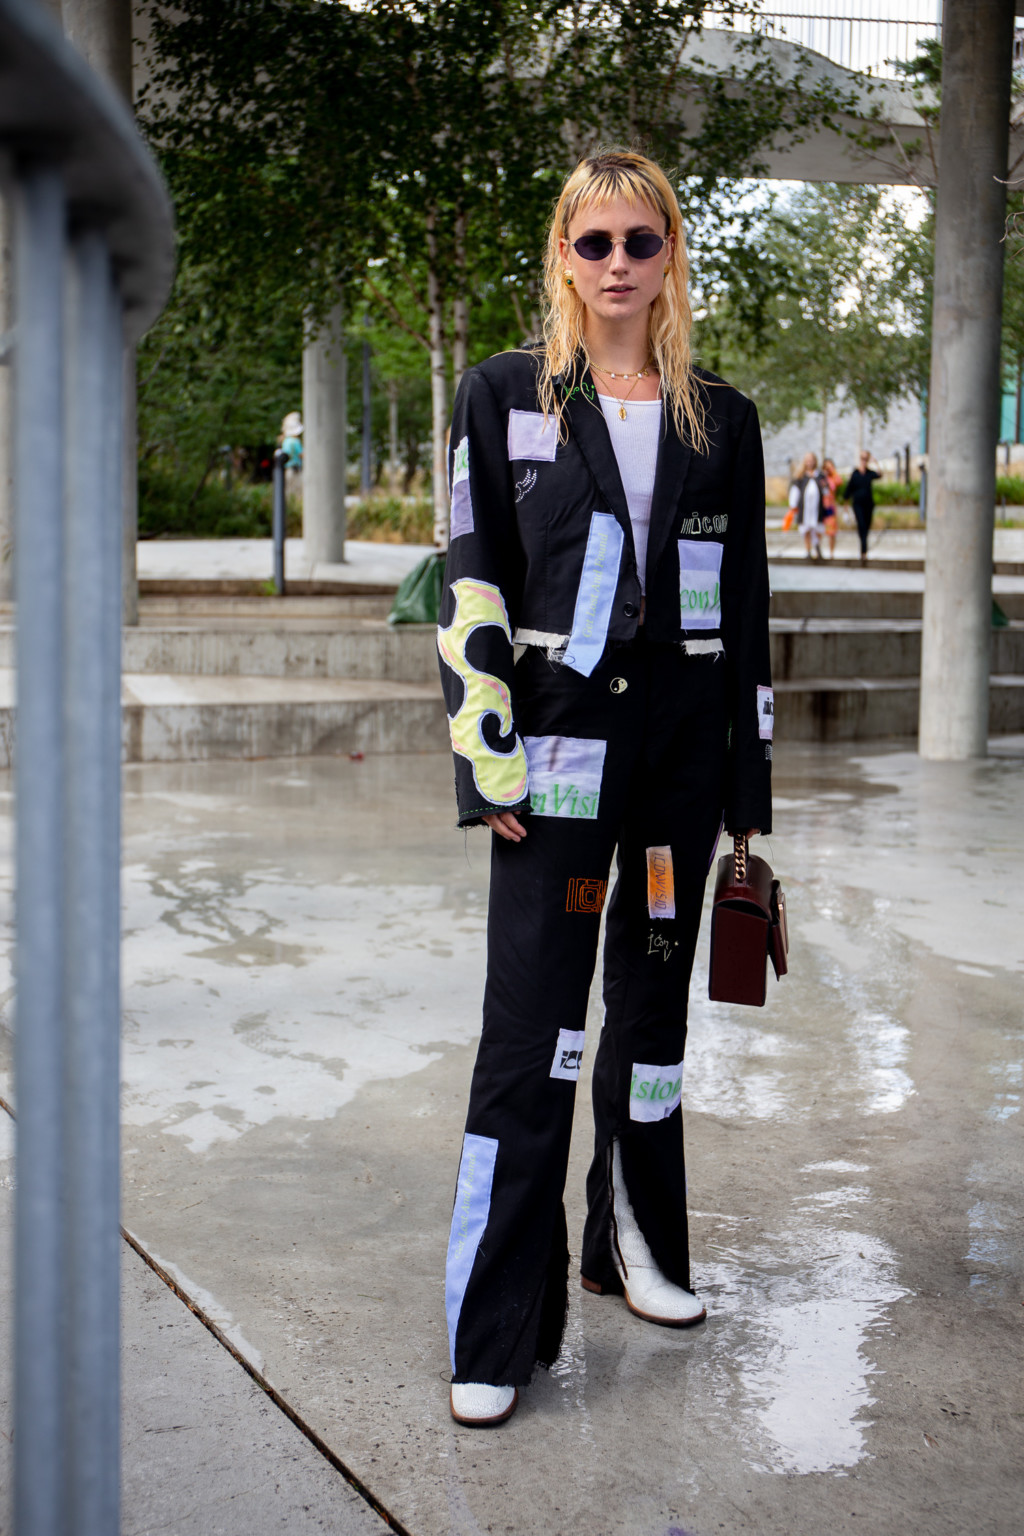 Spotting style on the streets at Copenhagen Fashion Week